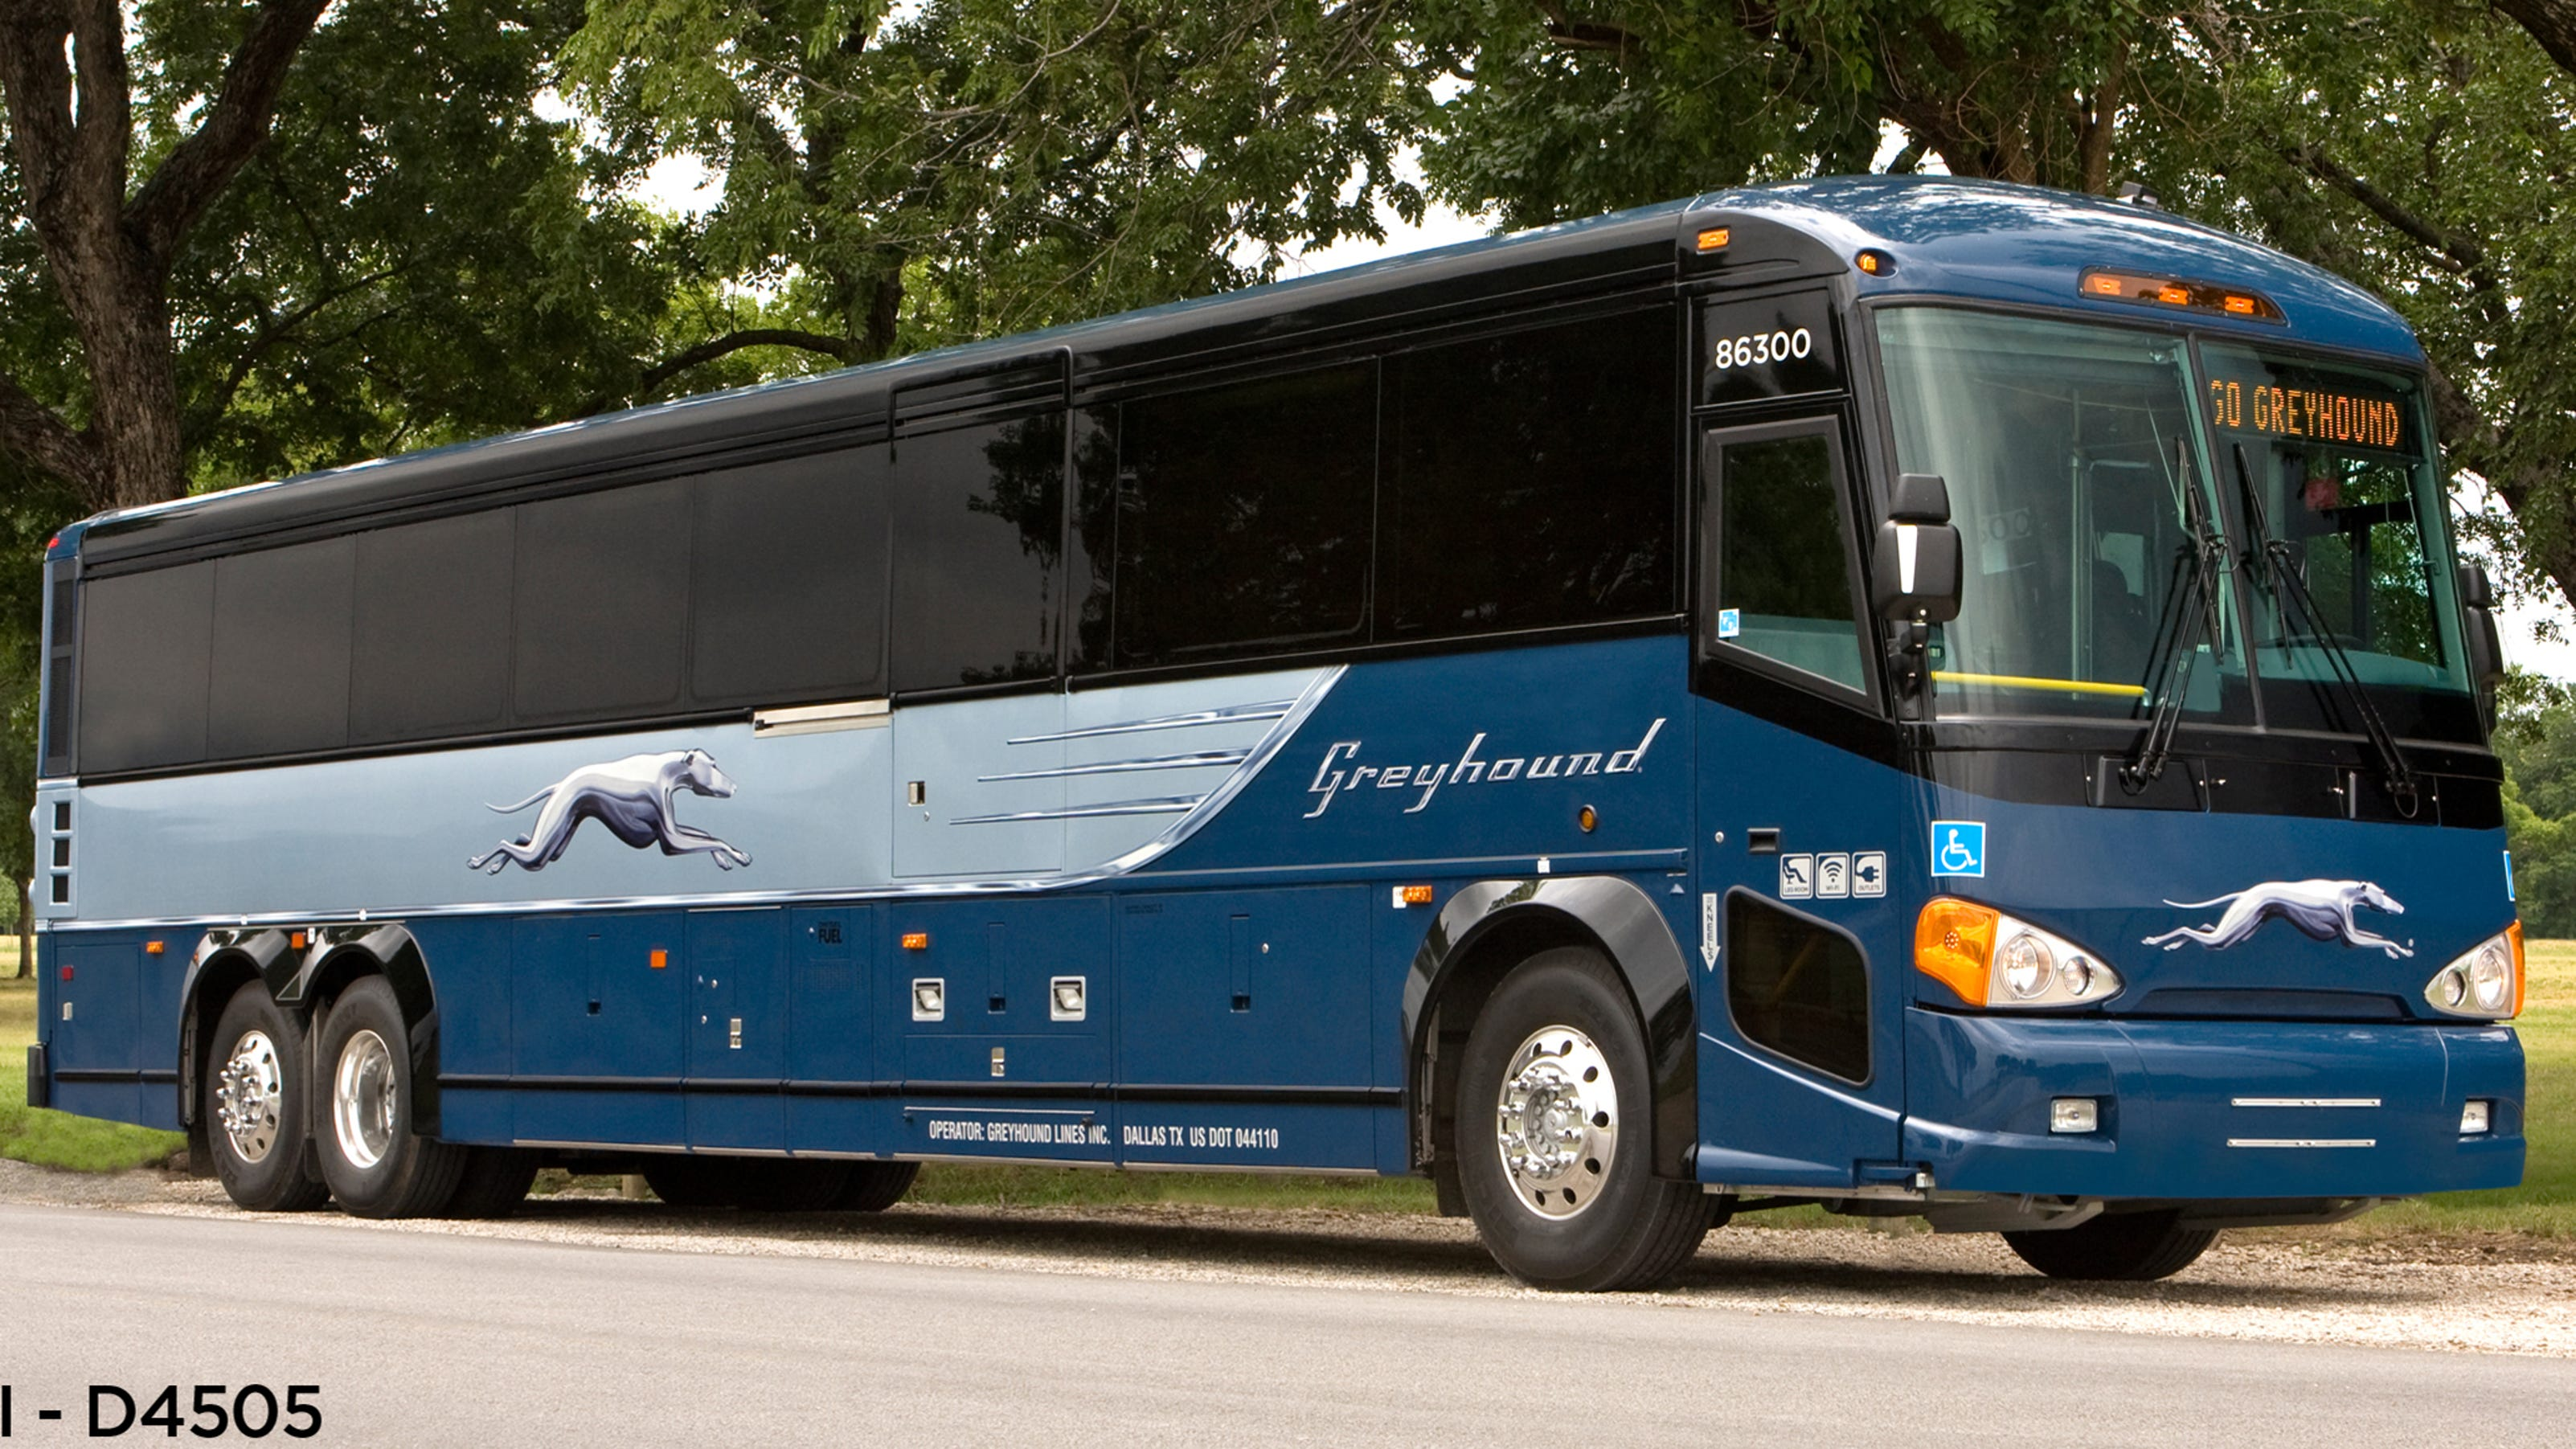 Greyhound remakes itself for a new generation